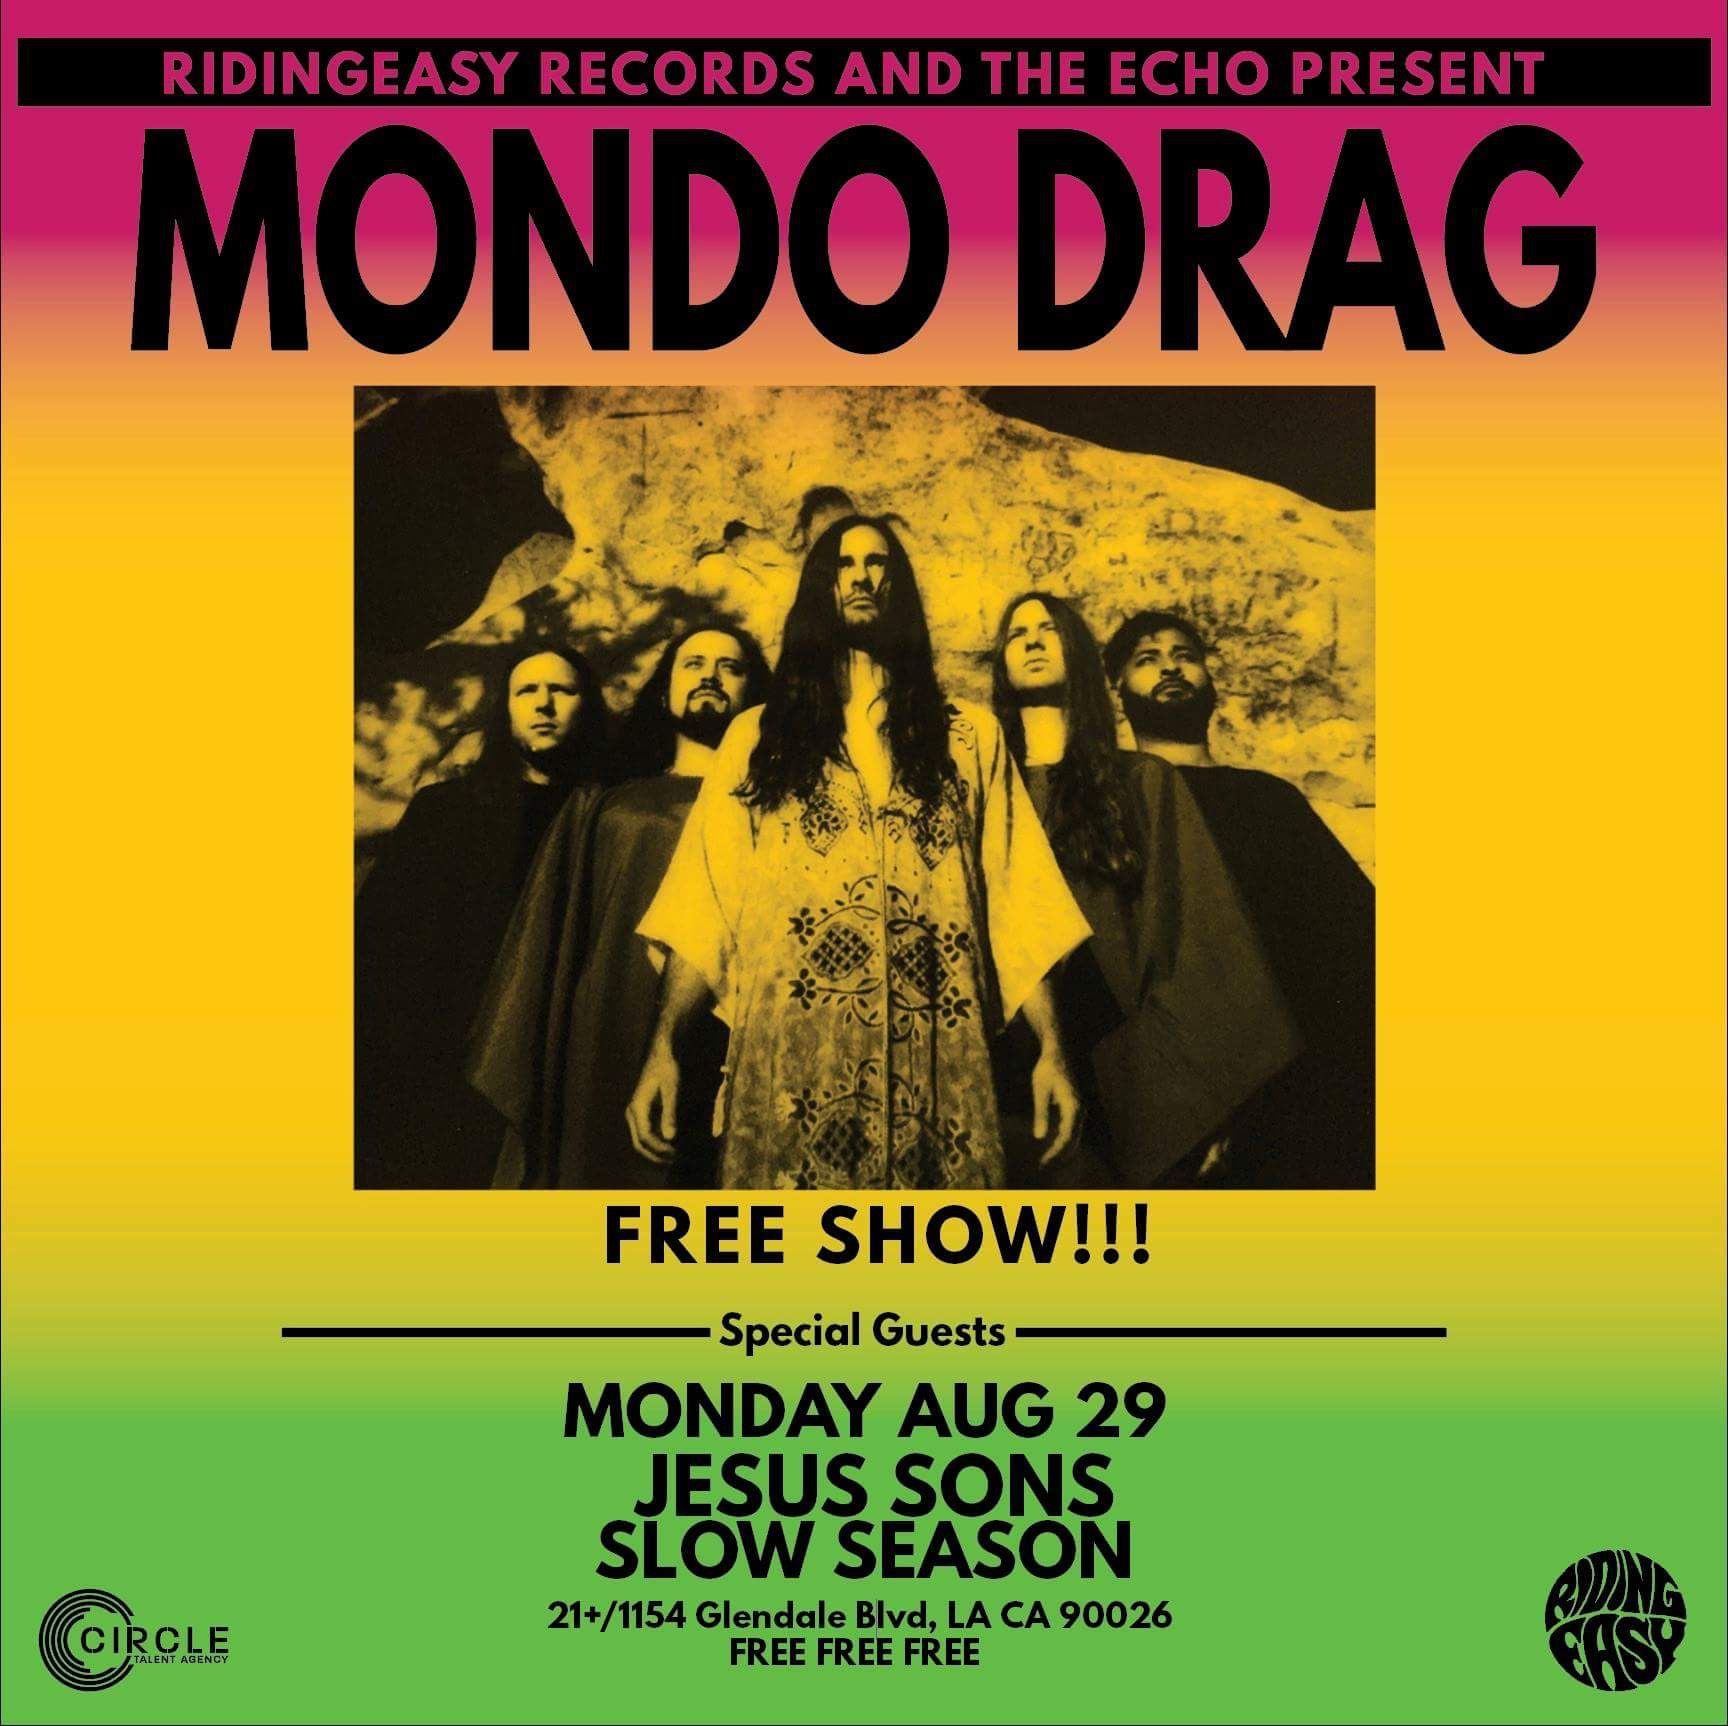 Mondo Drag at the Echoplex